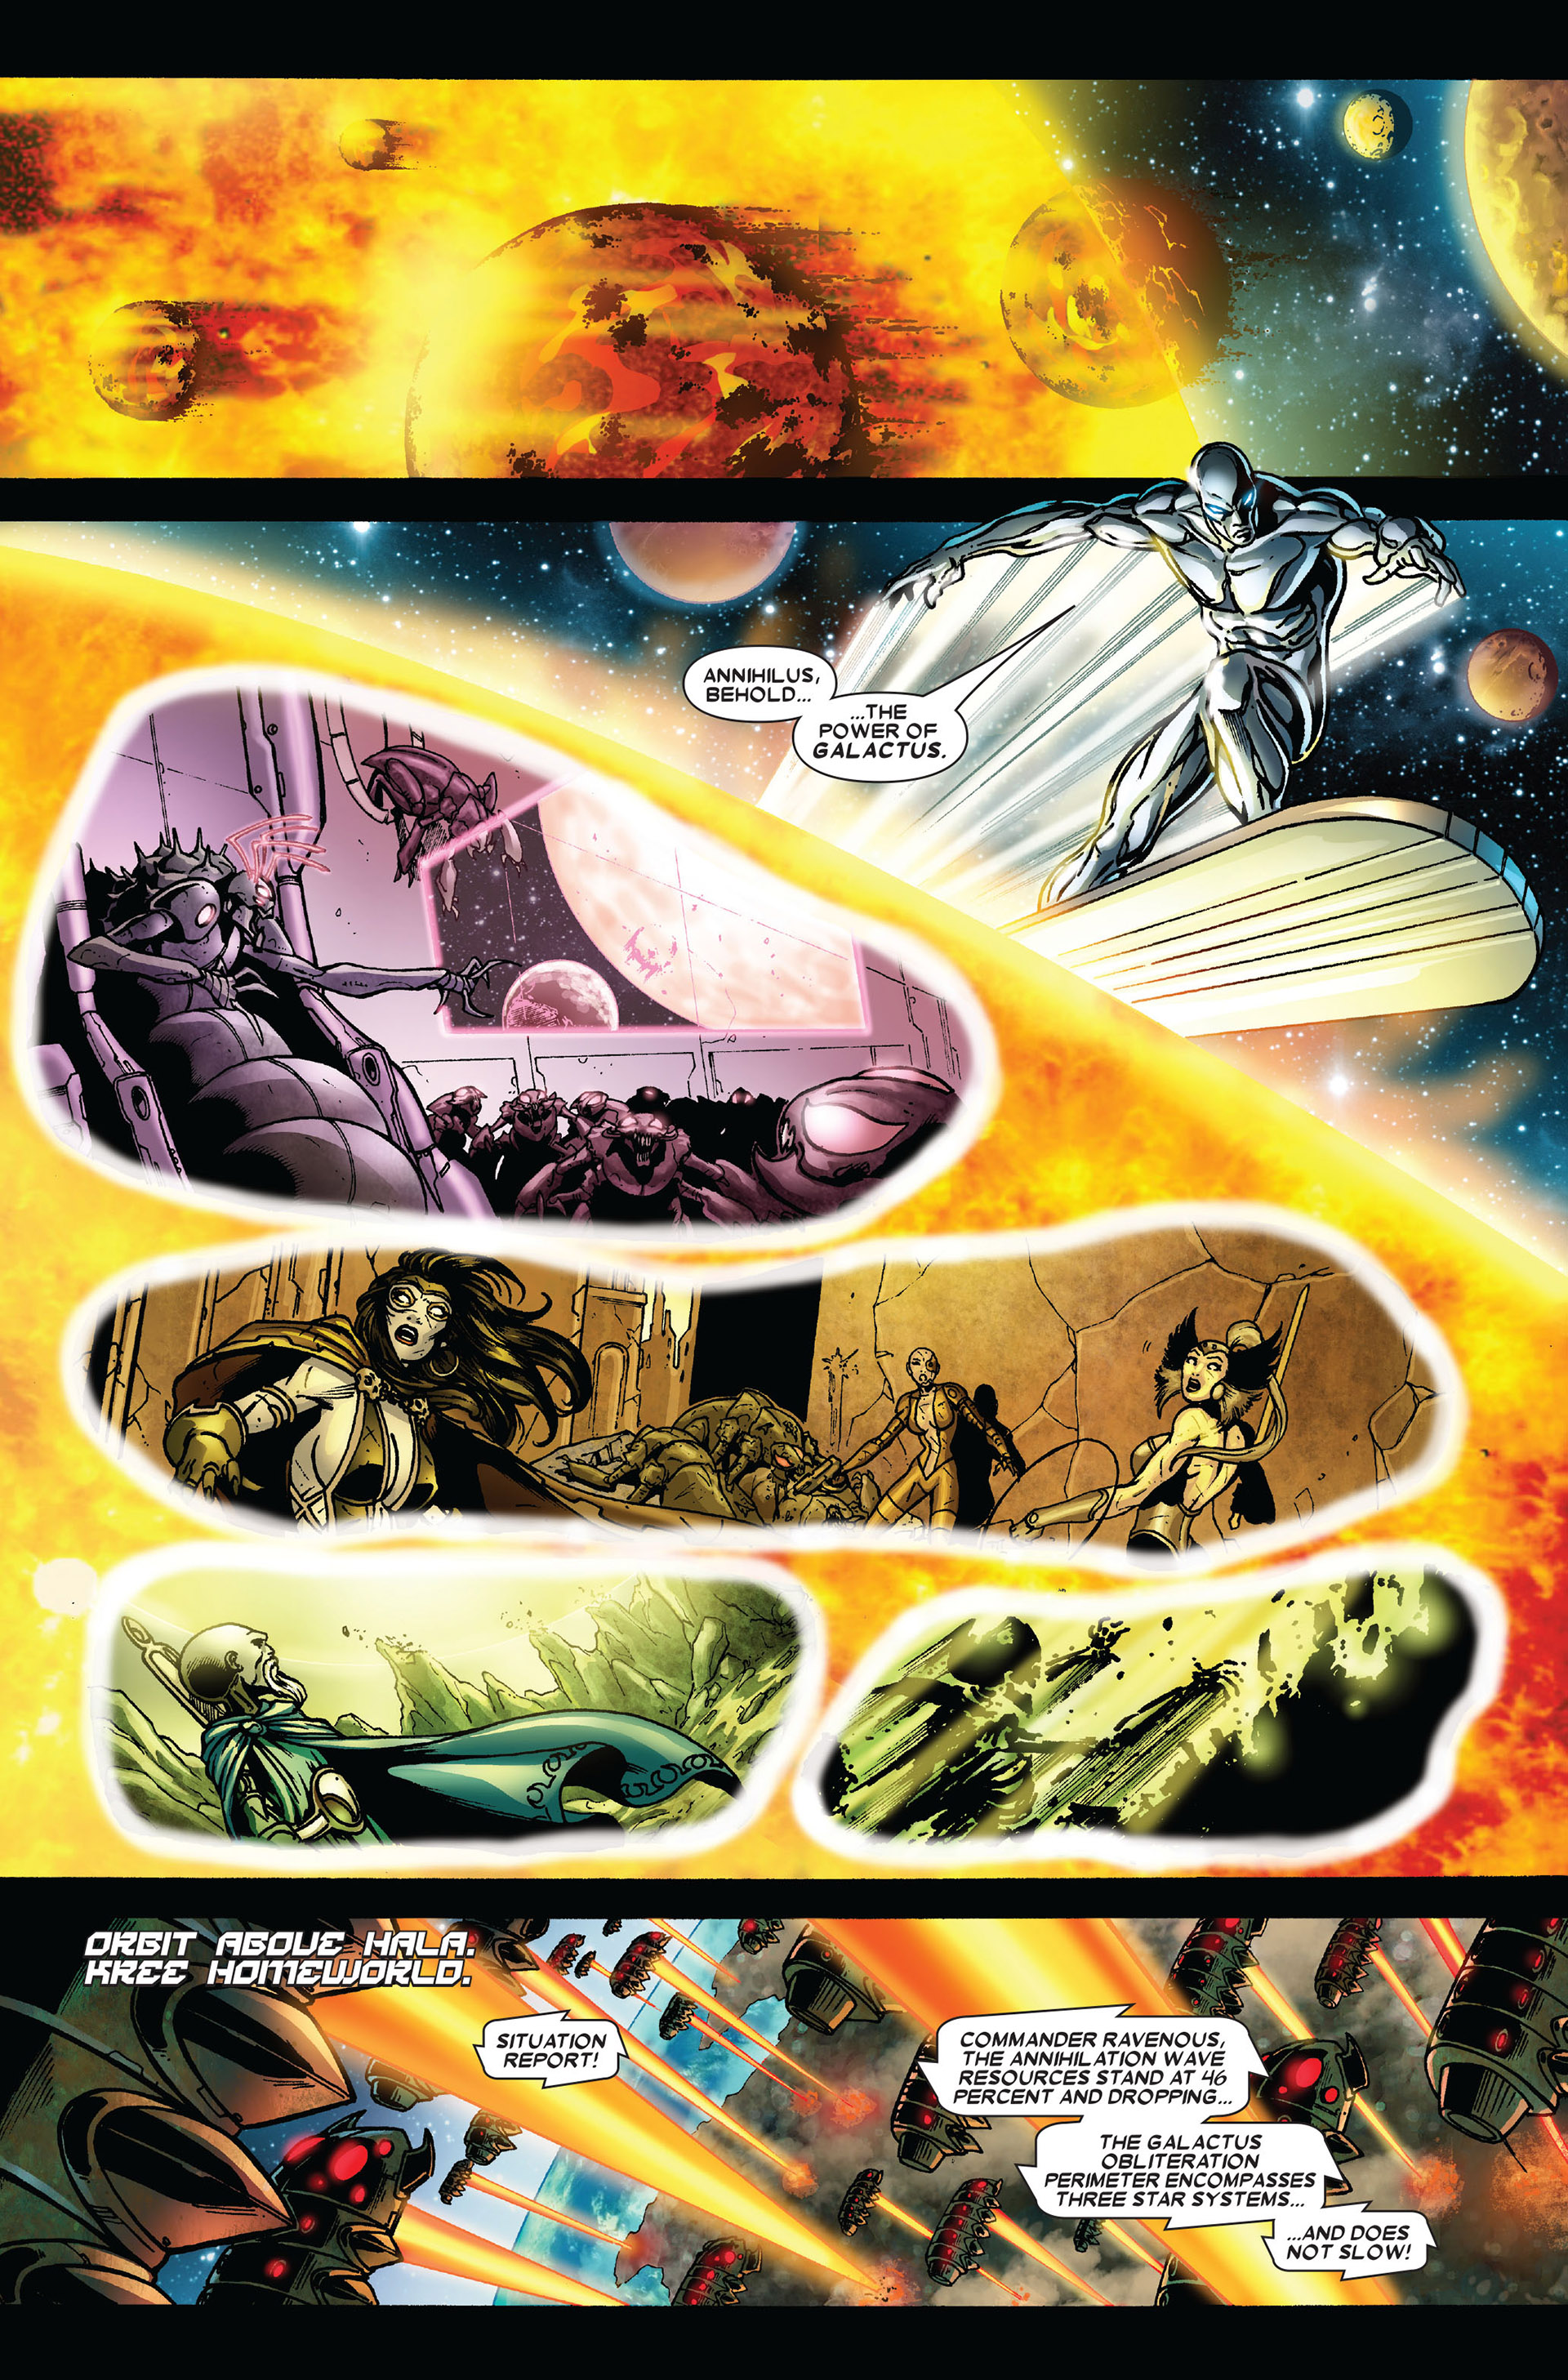 Read online Annihilation comic -  Issue #6 - 7